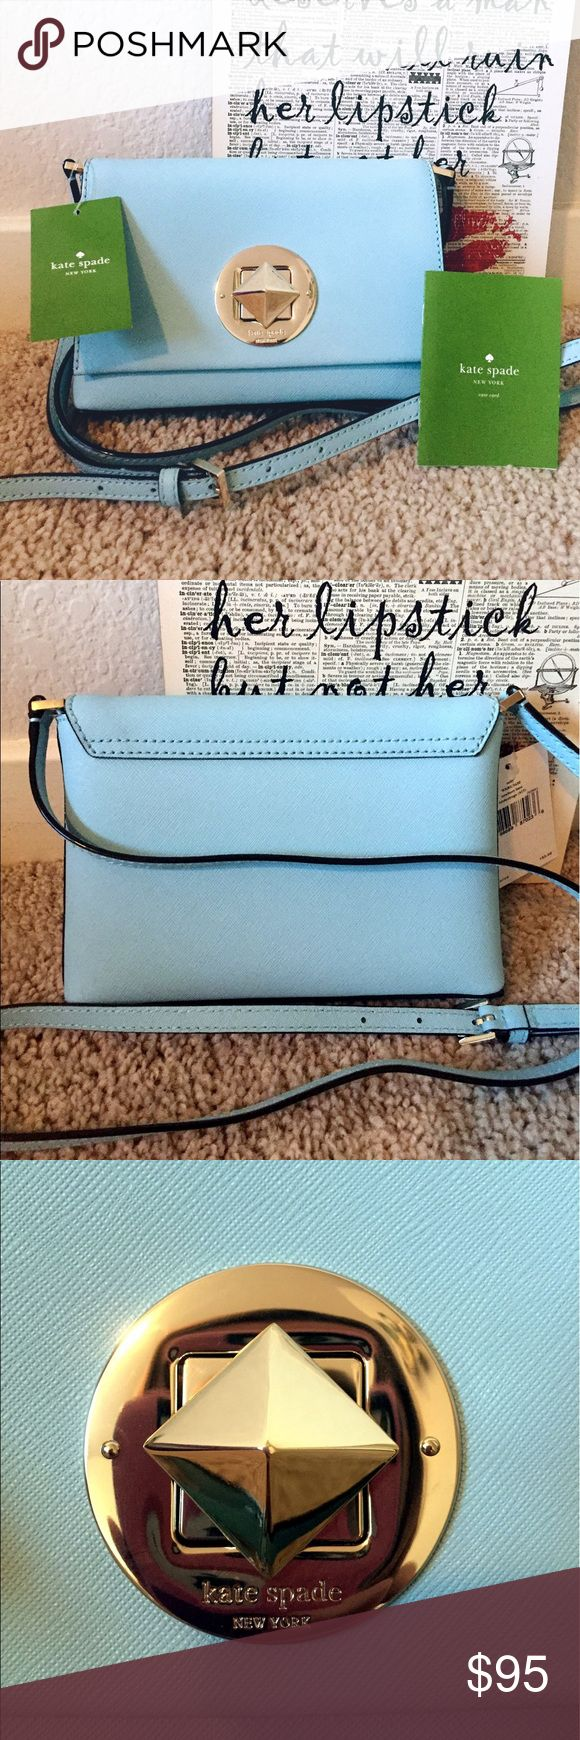 "NWT Kate Spade ♠️ Newberry Lane Sally Crossbody NWT super cute Kate Spade crossbody!! This gorgeous aqua blue (hydrangea) color with light gold plated hardware is the perfect style for spring. The interior is an adorable black and white pattern. The center piece spins to open and close the purse. DIMENSIONS: 7.5""-W 5""-H 1""-D 21"" adjustable strap drop. No trades please. Reasonable offers will be accepted :) kate spade Bags Crossbody Bags"